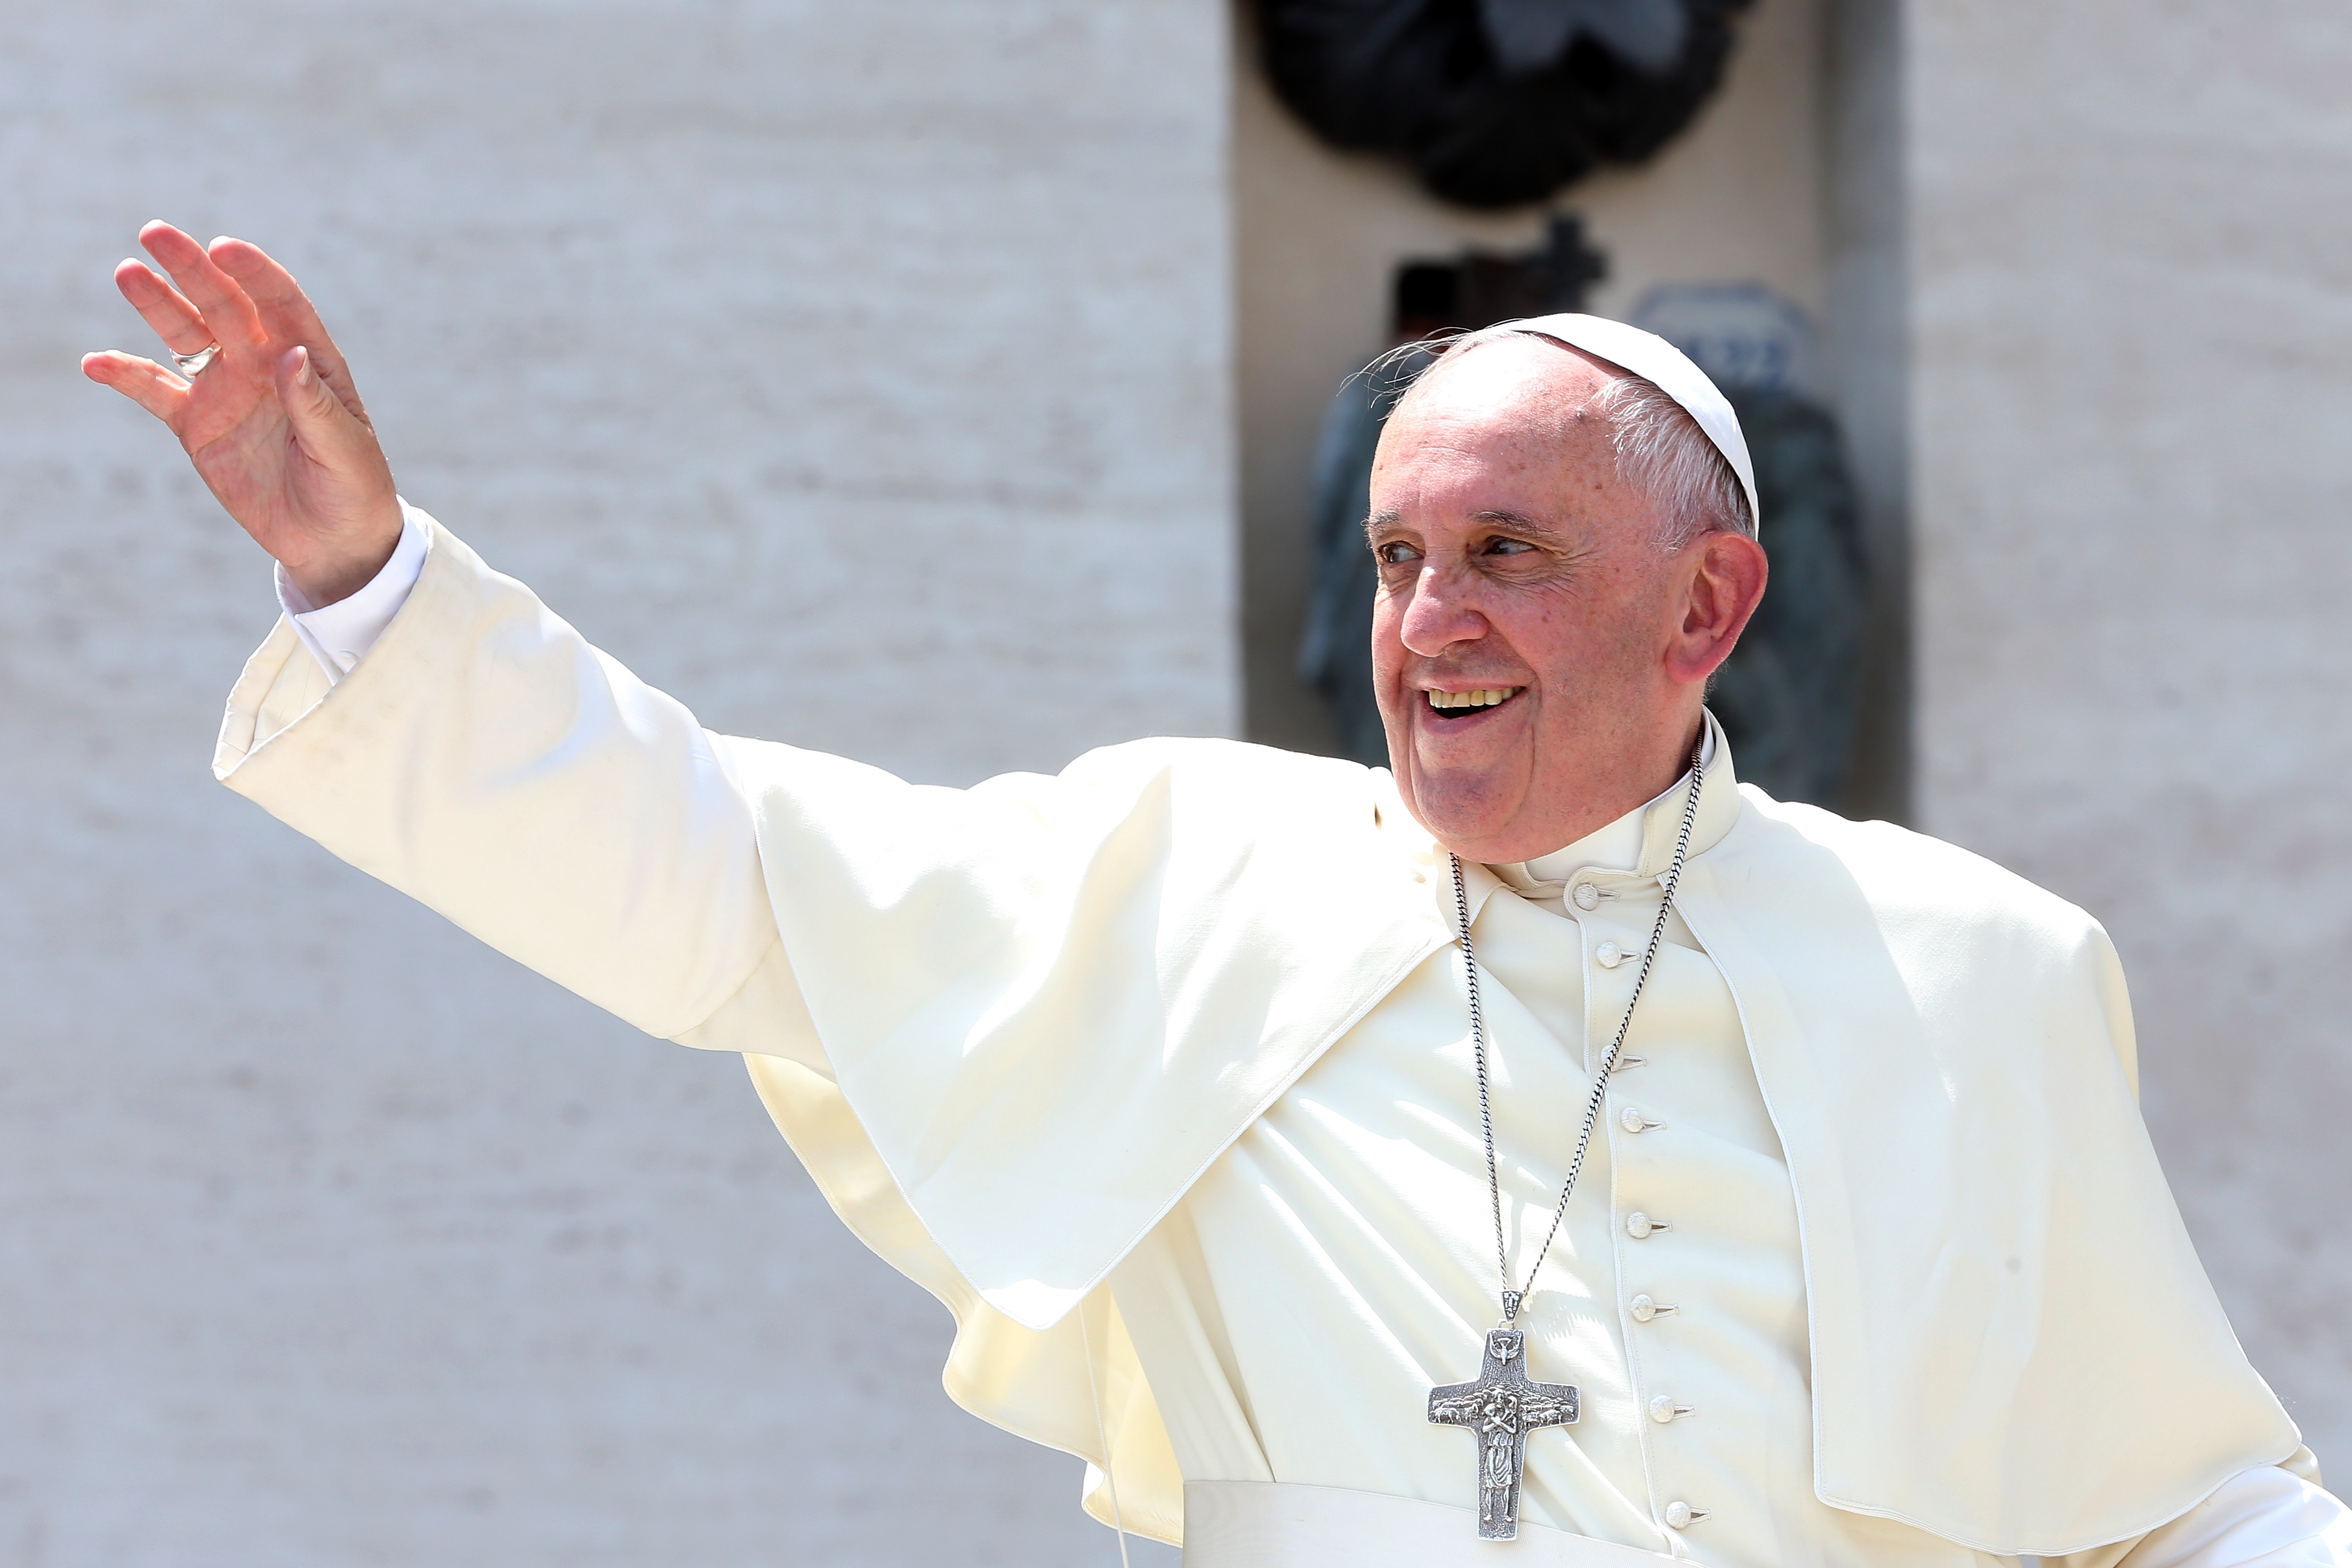 Pope Francis on June 13, 2015 in Vatican City.